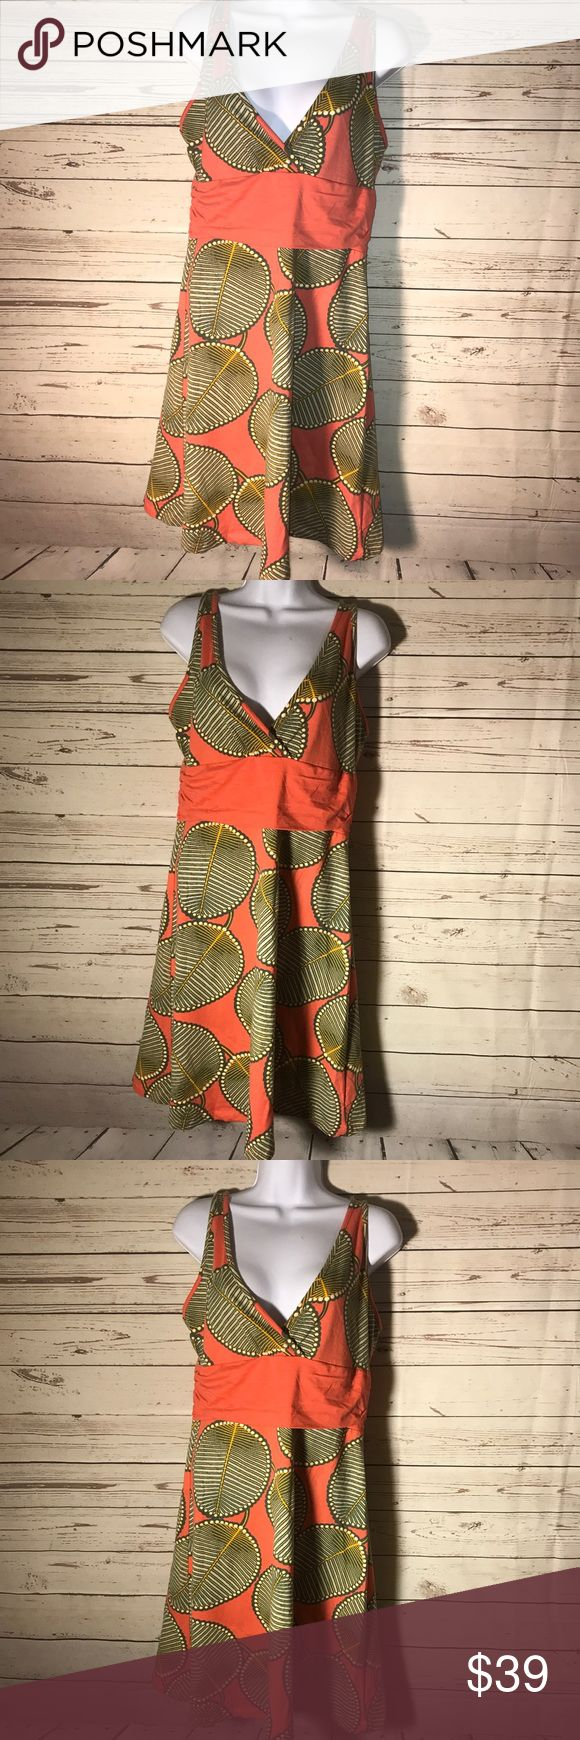 Patagonia dress Margot stretch wrap top dress Leaf print  17 pit to pit  38 long  Description: Patagonia size small women's blue with multicolor leaf print Margot sleeveless dress EUC!   - leaf print throughout  - Sleeveless  - cinched sides   -coral stretchy are under bust  - criss cross frontal  -contrast stitching  - knee length  There are no issues with the condition of this dress. Patagonia Dresses Mini